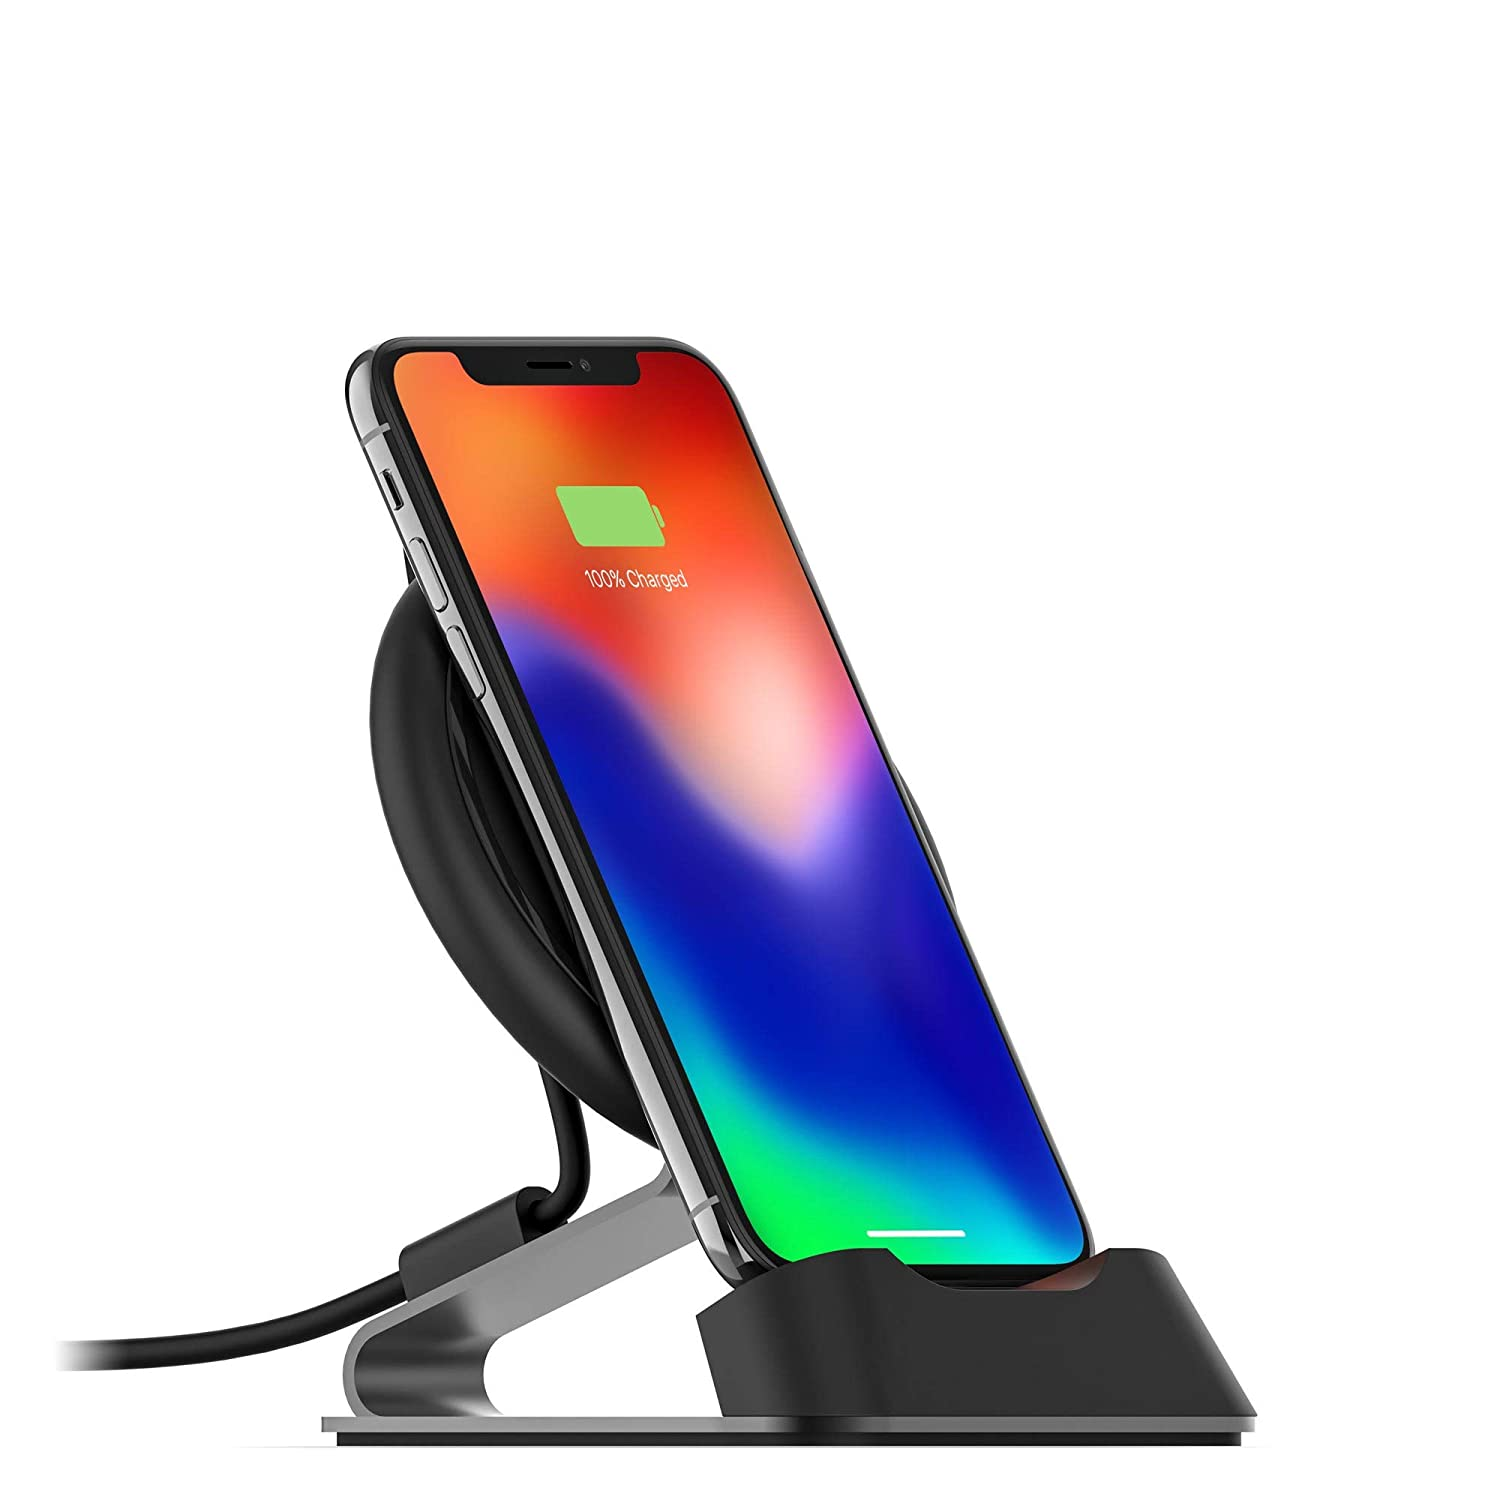 Outstanding Mophie Charge Stream Desk Stand Made For Apple Iphone Xs X Iphone Xs Max Iphone Xr Iphone 8 Plus Iphone 8 Samsung And Other Qi Enabled Devices Download Free Architecture Designs Meptaeticmadebymaigaardcom